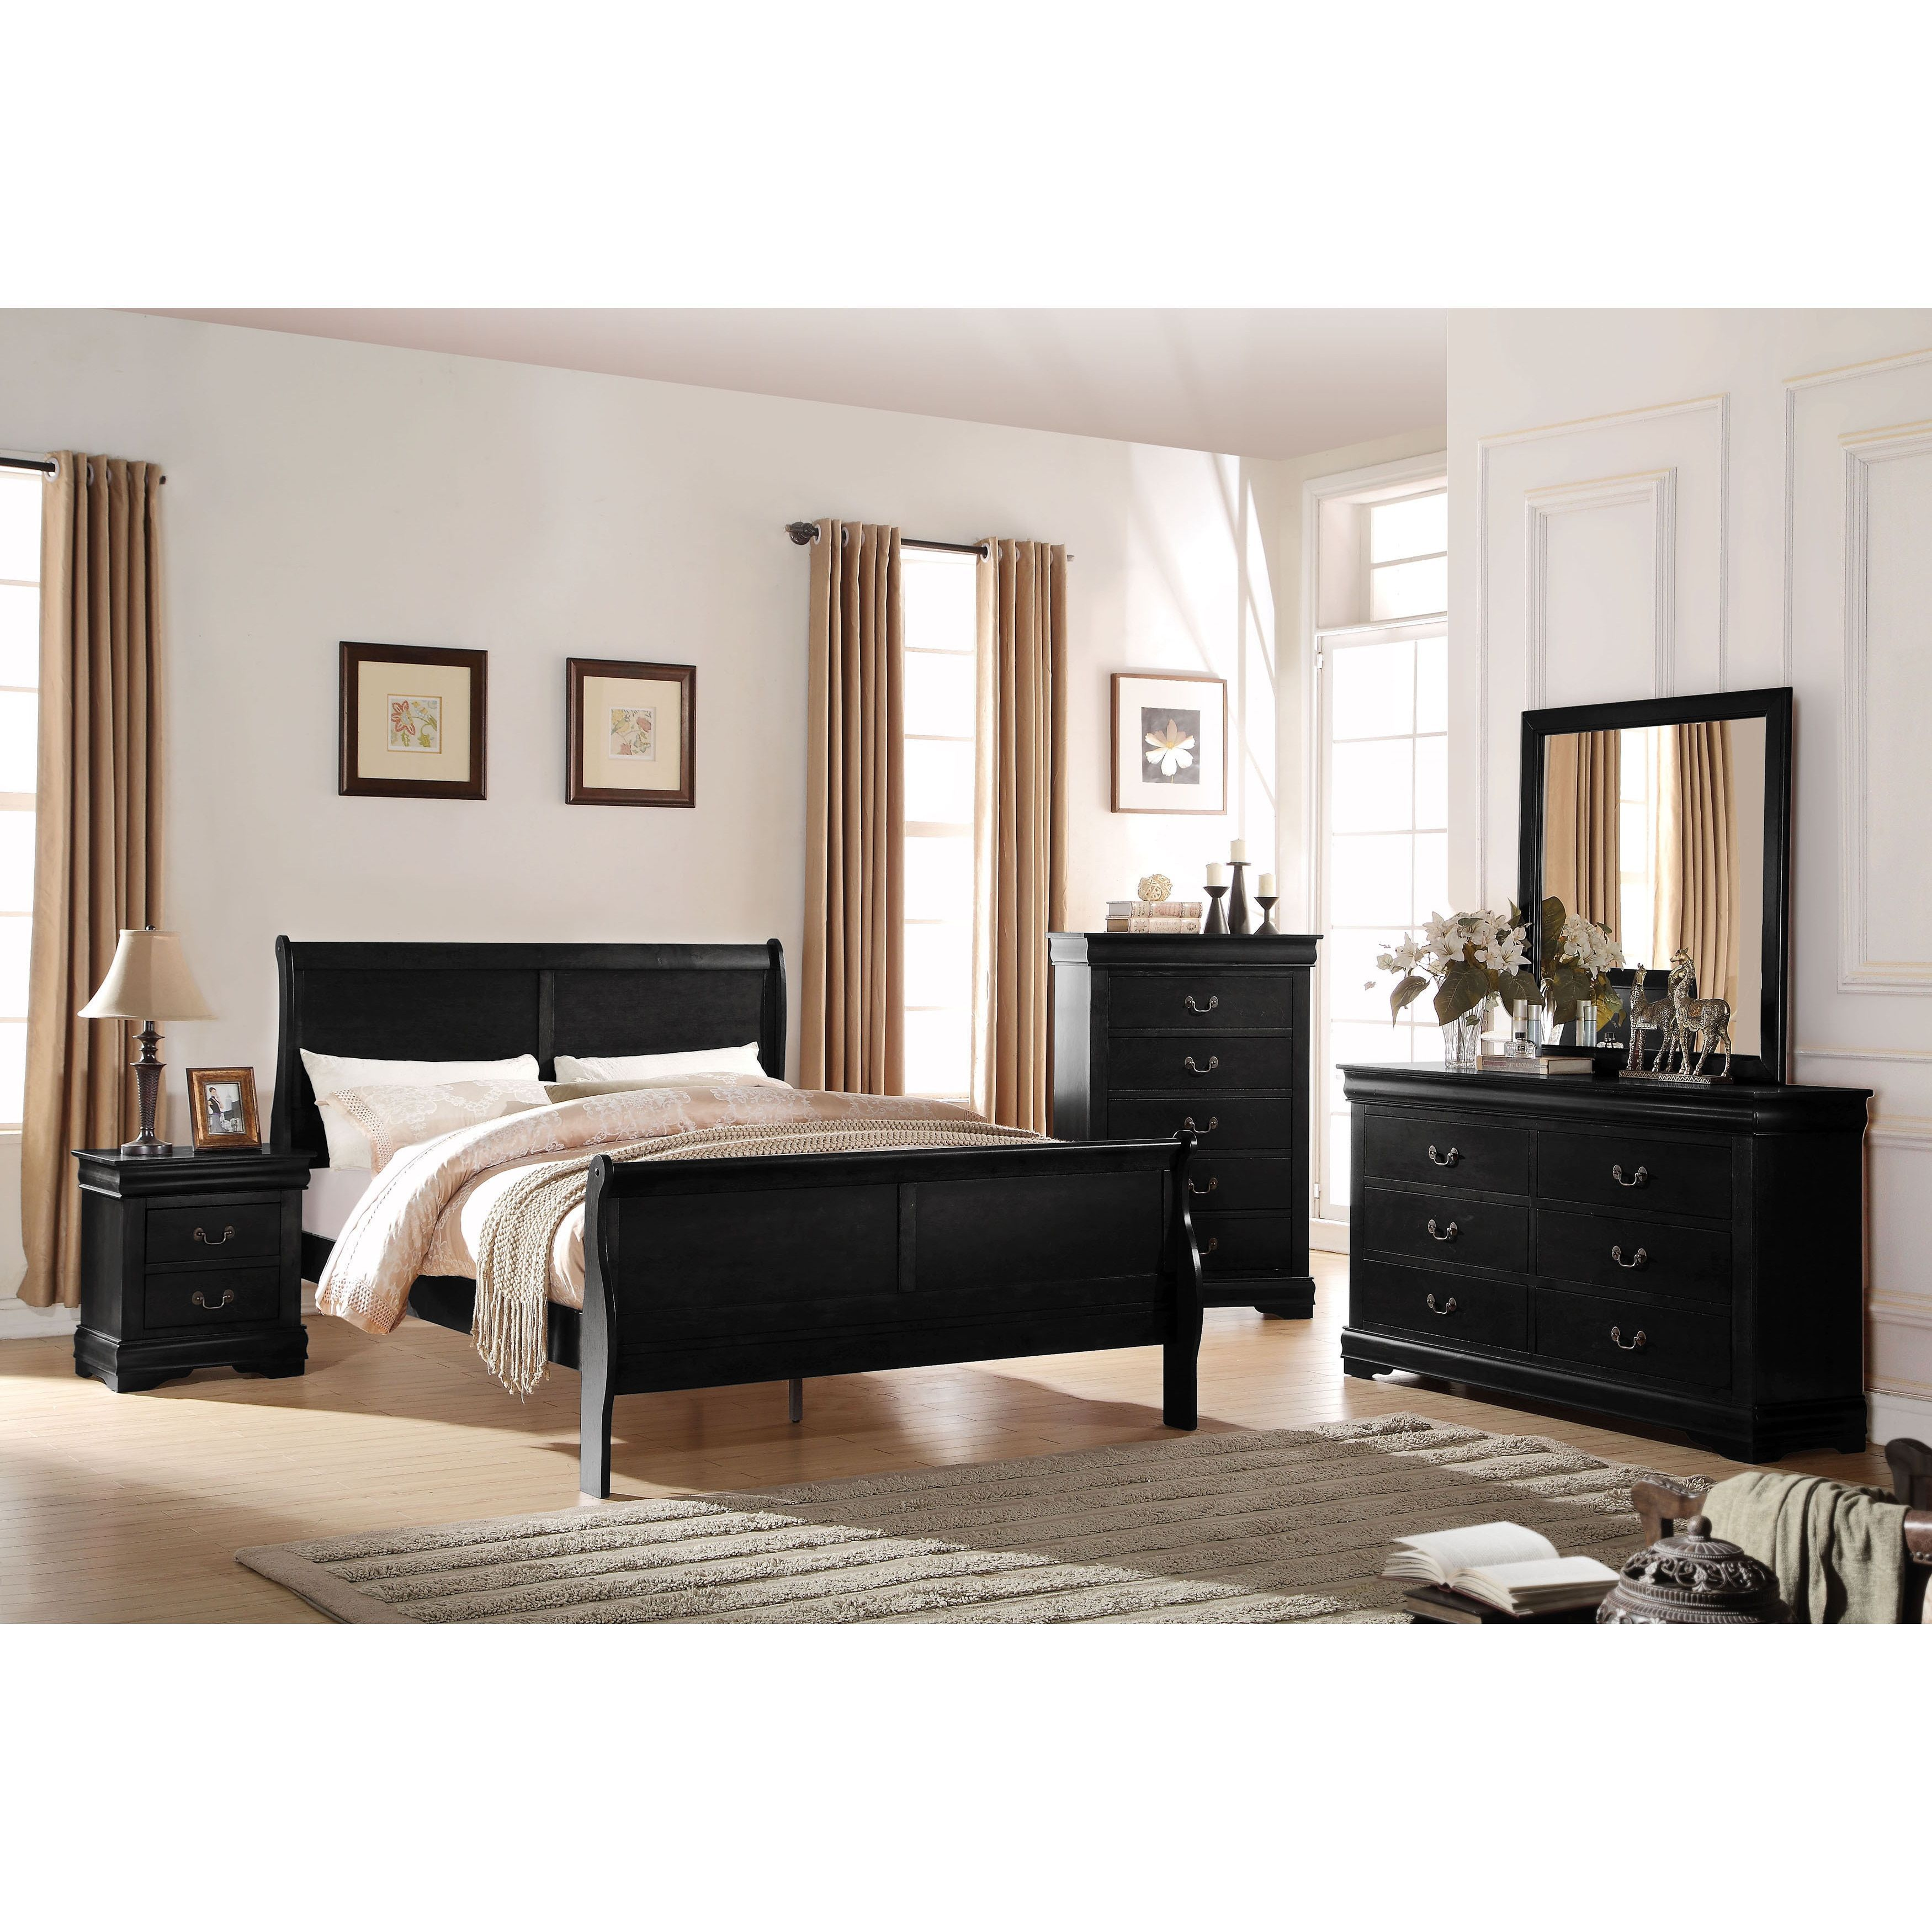 Acme Furniture Louis Philippe Black 4 Piece Sleigh Bedroom Set Full